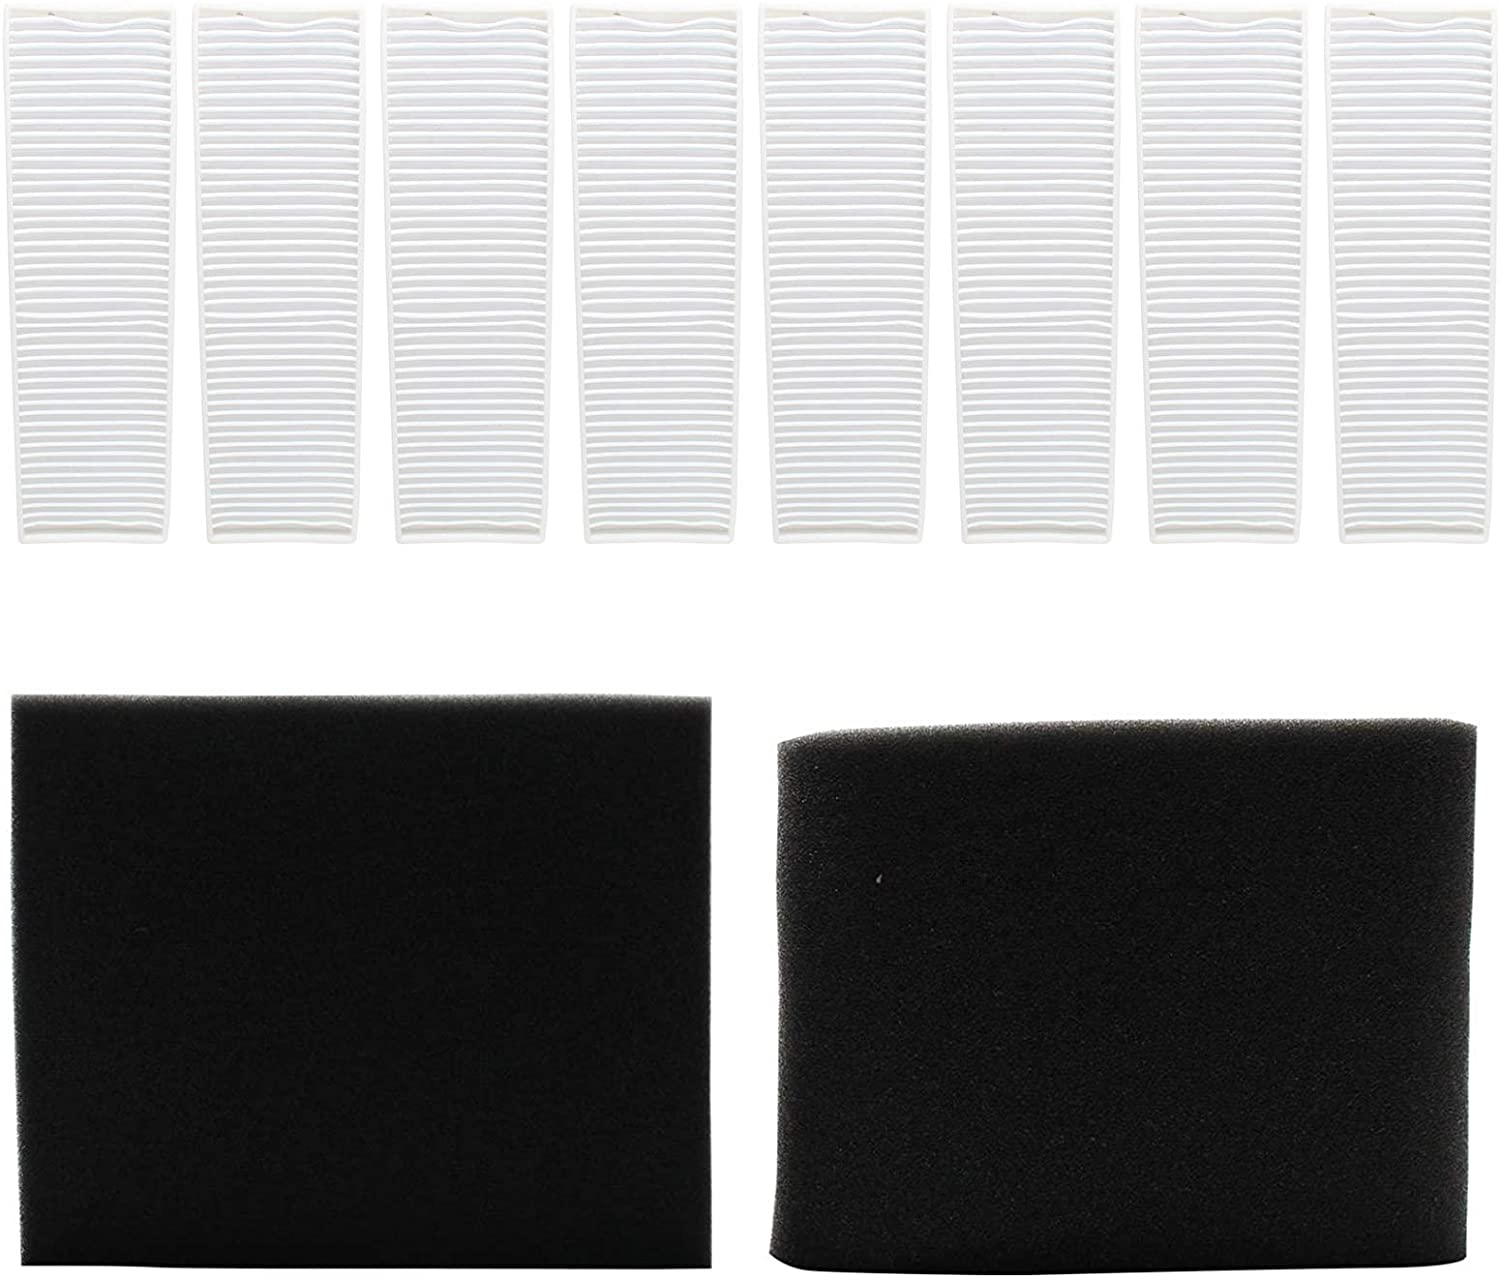 Replacement Bissell Vacuum Style 7 Filter - 8 Pleated Post Motor, 1 Upper Tank and 1 Pre-Motor Filter - For Bissell Style 7, Bissell 71Y7, Bissell 6591, Bissell 3576, Bissell 3593, Bissell 8990